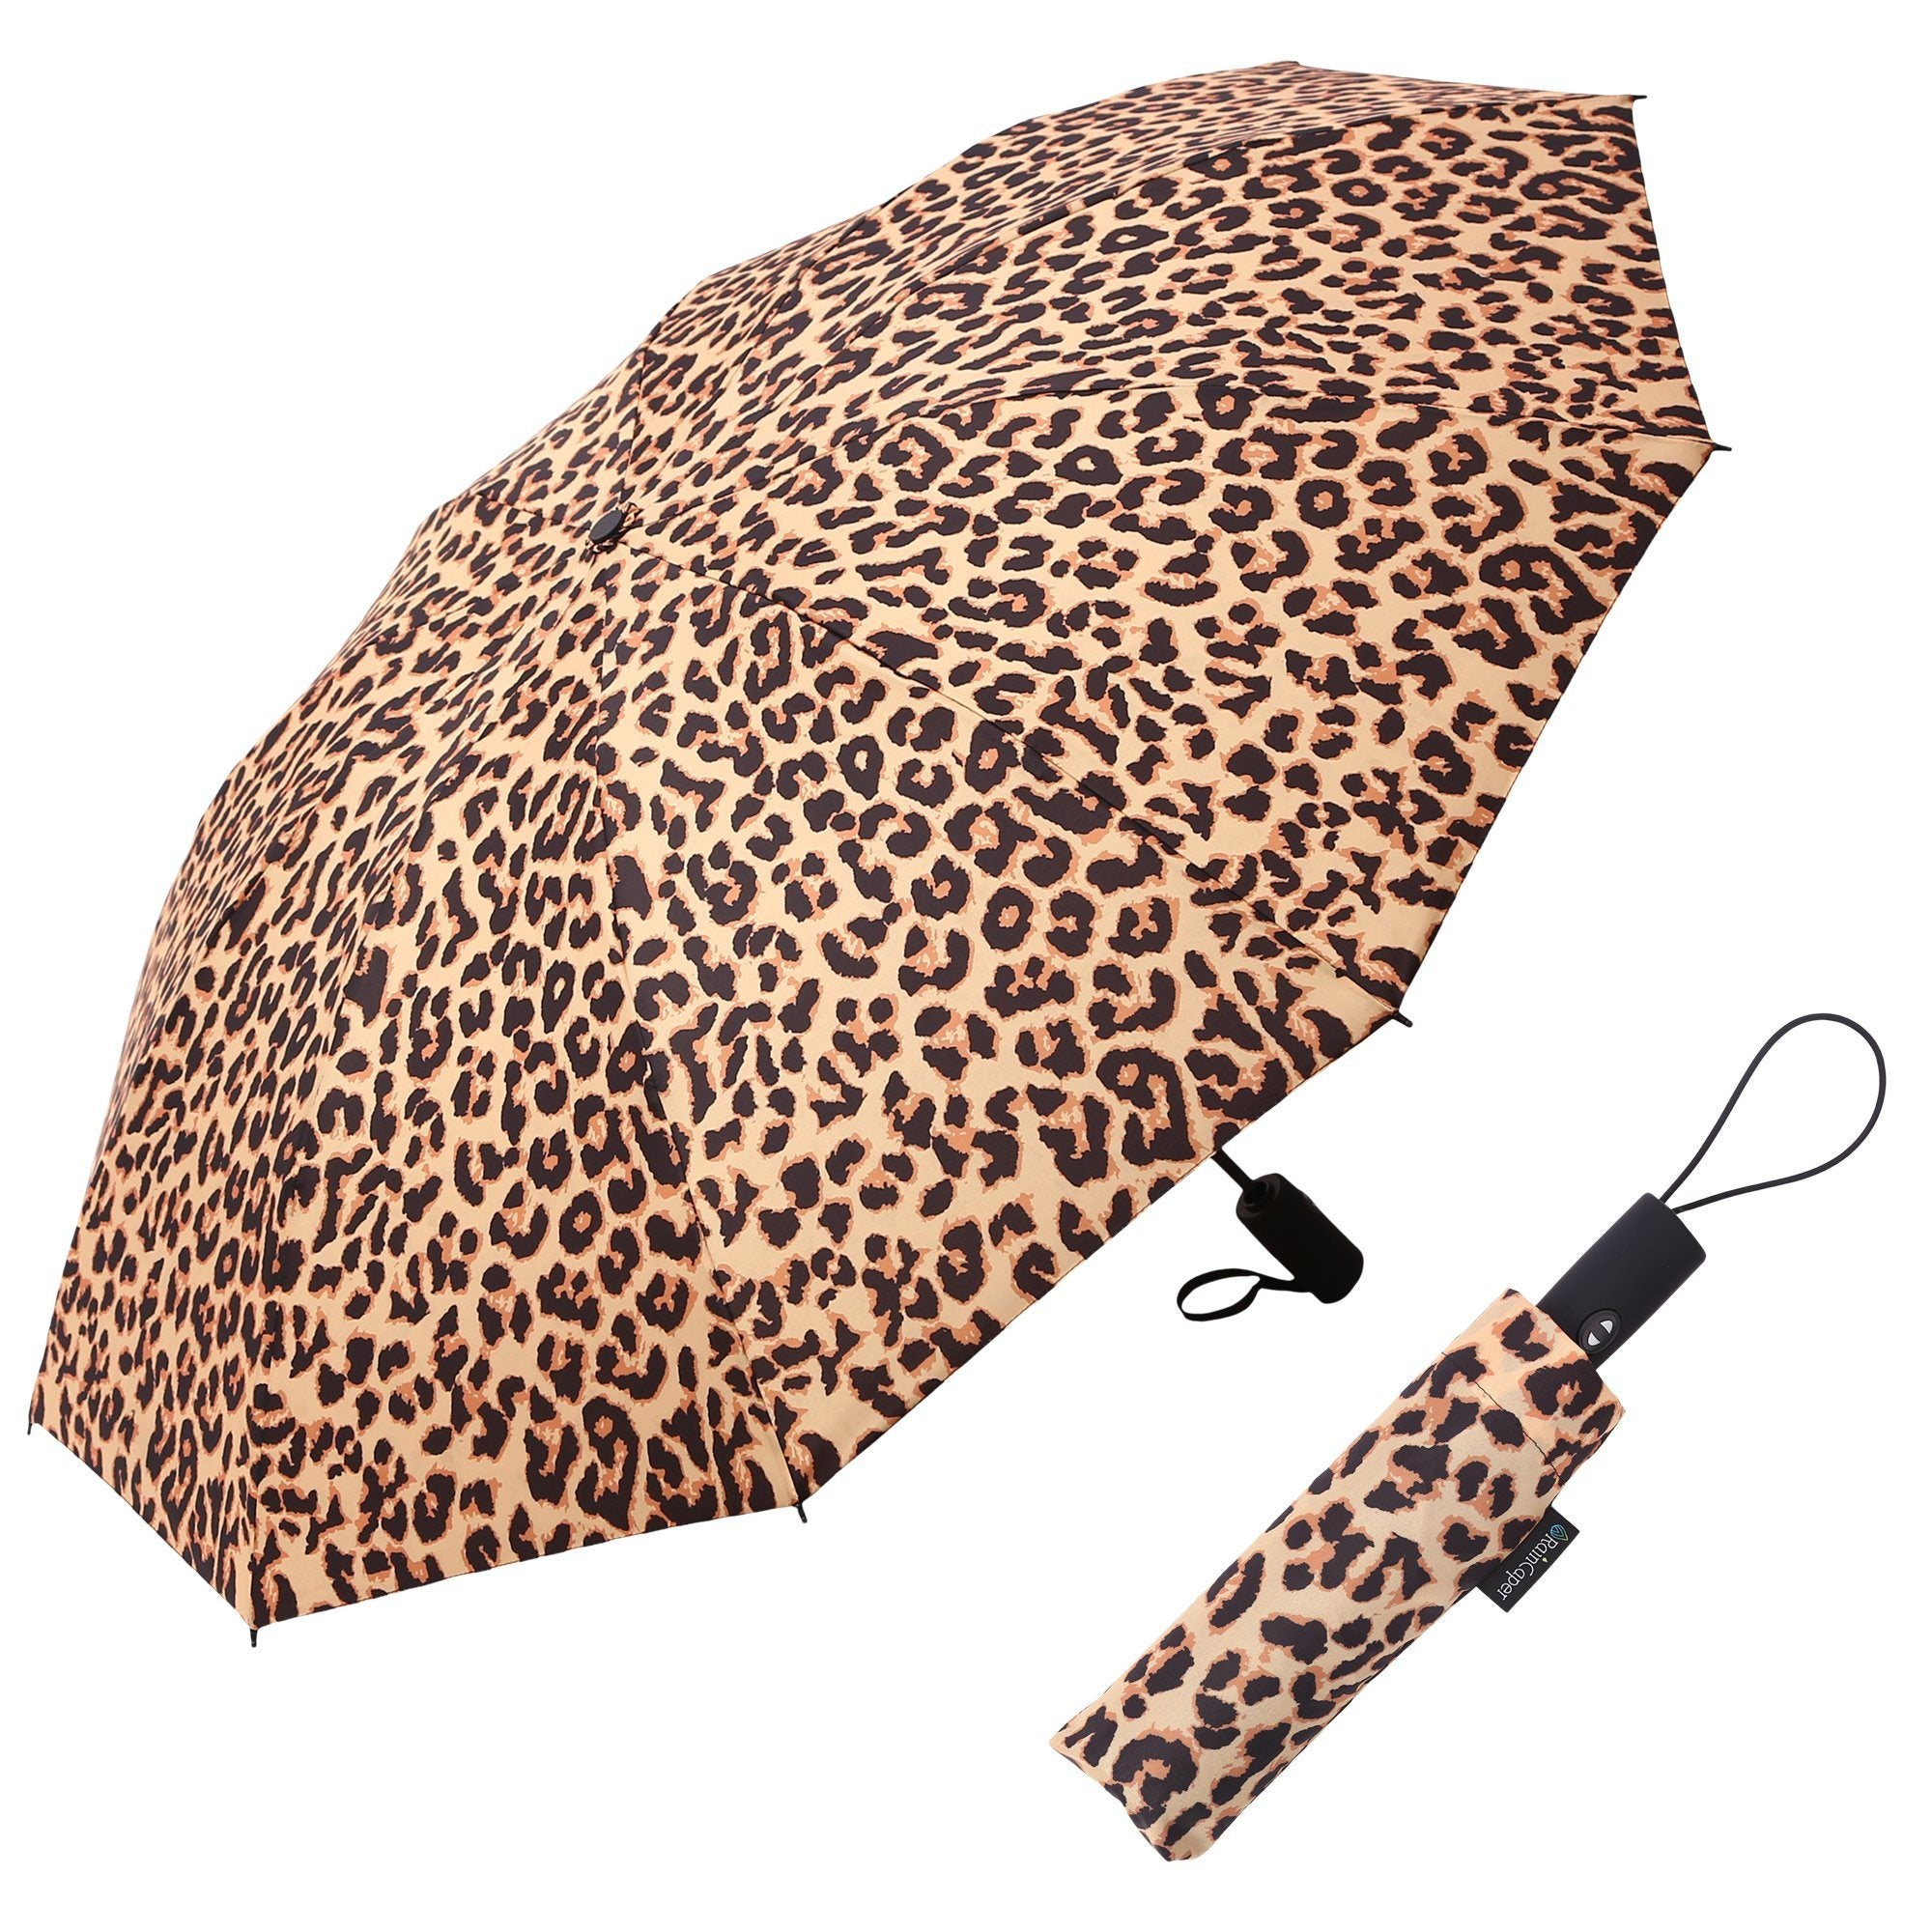 Image of a RainCaper Leopard folded traveling umbrella shown both open and closed